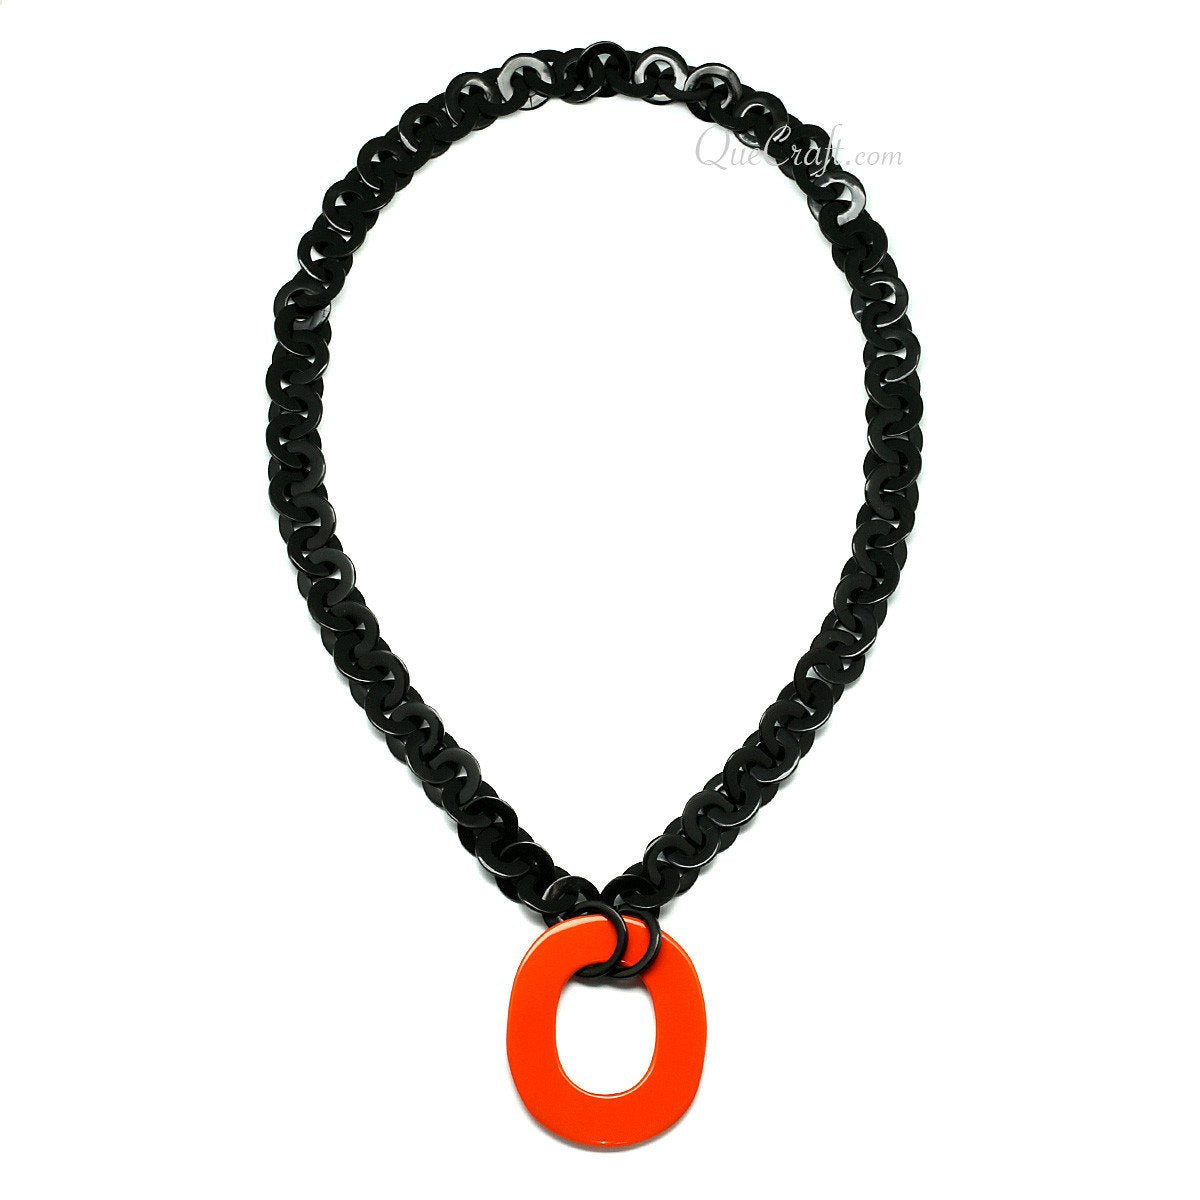 Horn & Lacquer Chain Necklace #11534 - HORN.JEWELRY by QueCraft